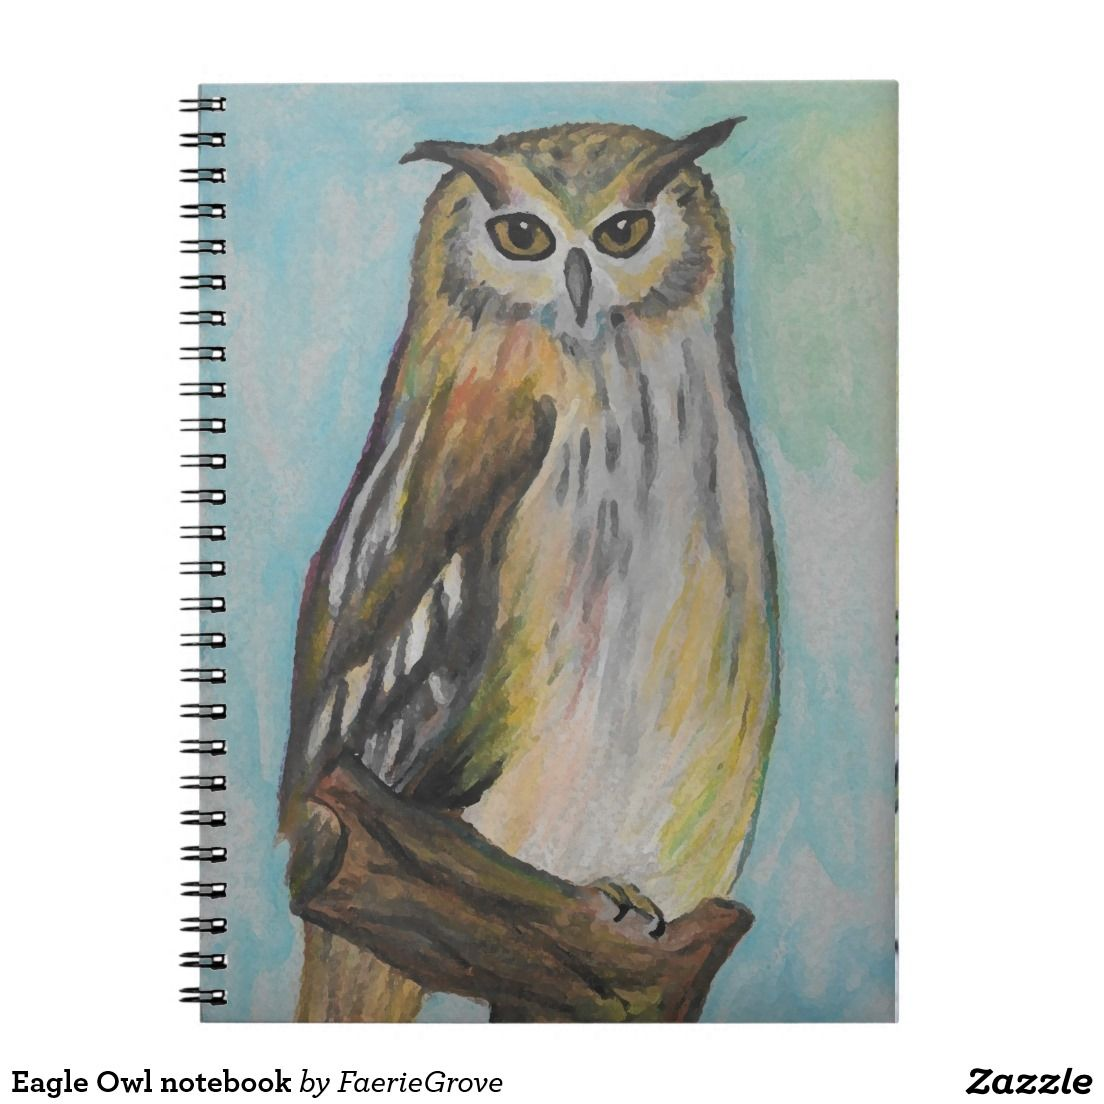 Eagle Owl notebook